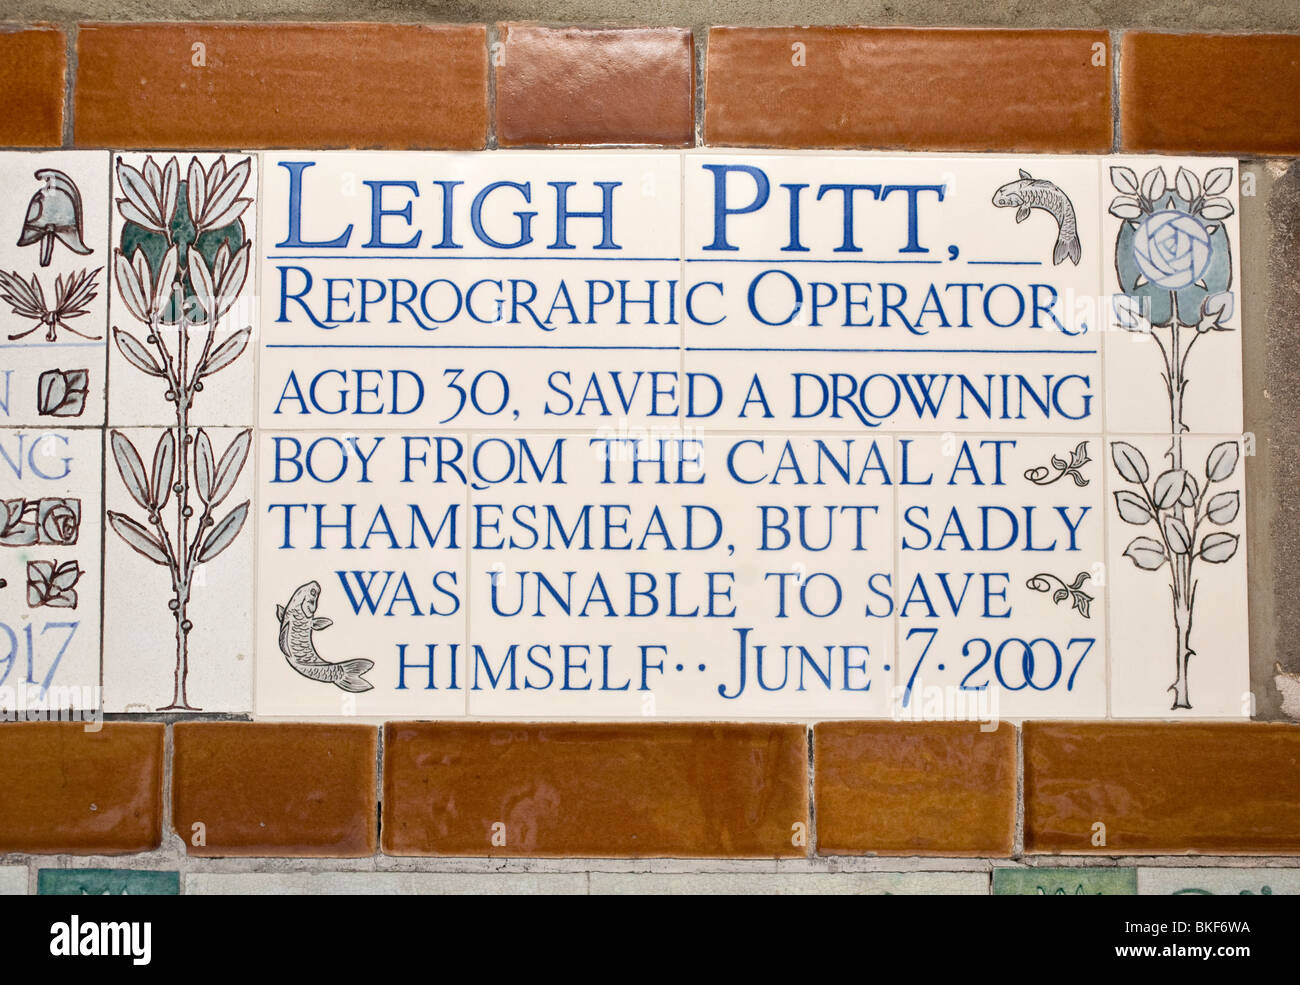 Memorial tiles to Leigh Pitt. Postman's Park, The City, London, England, UK - Stock Image